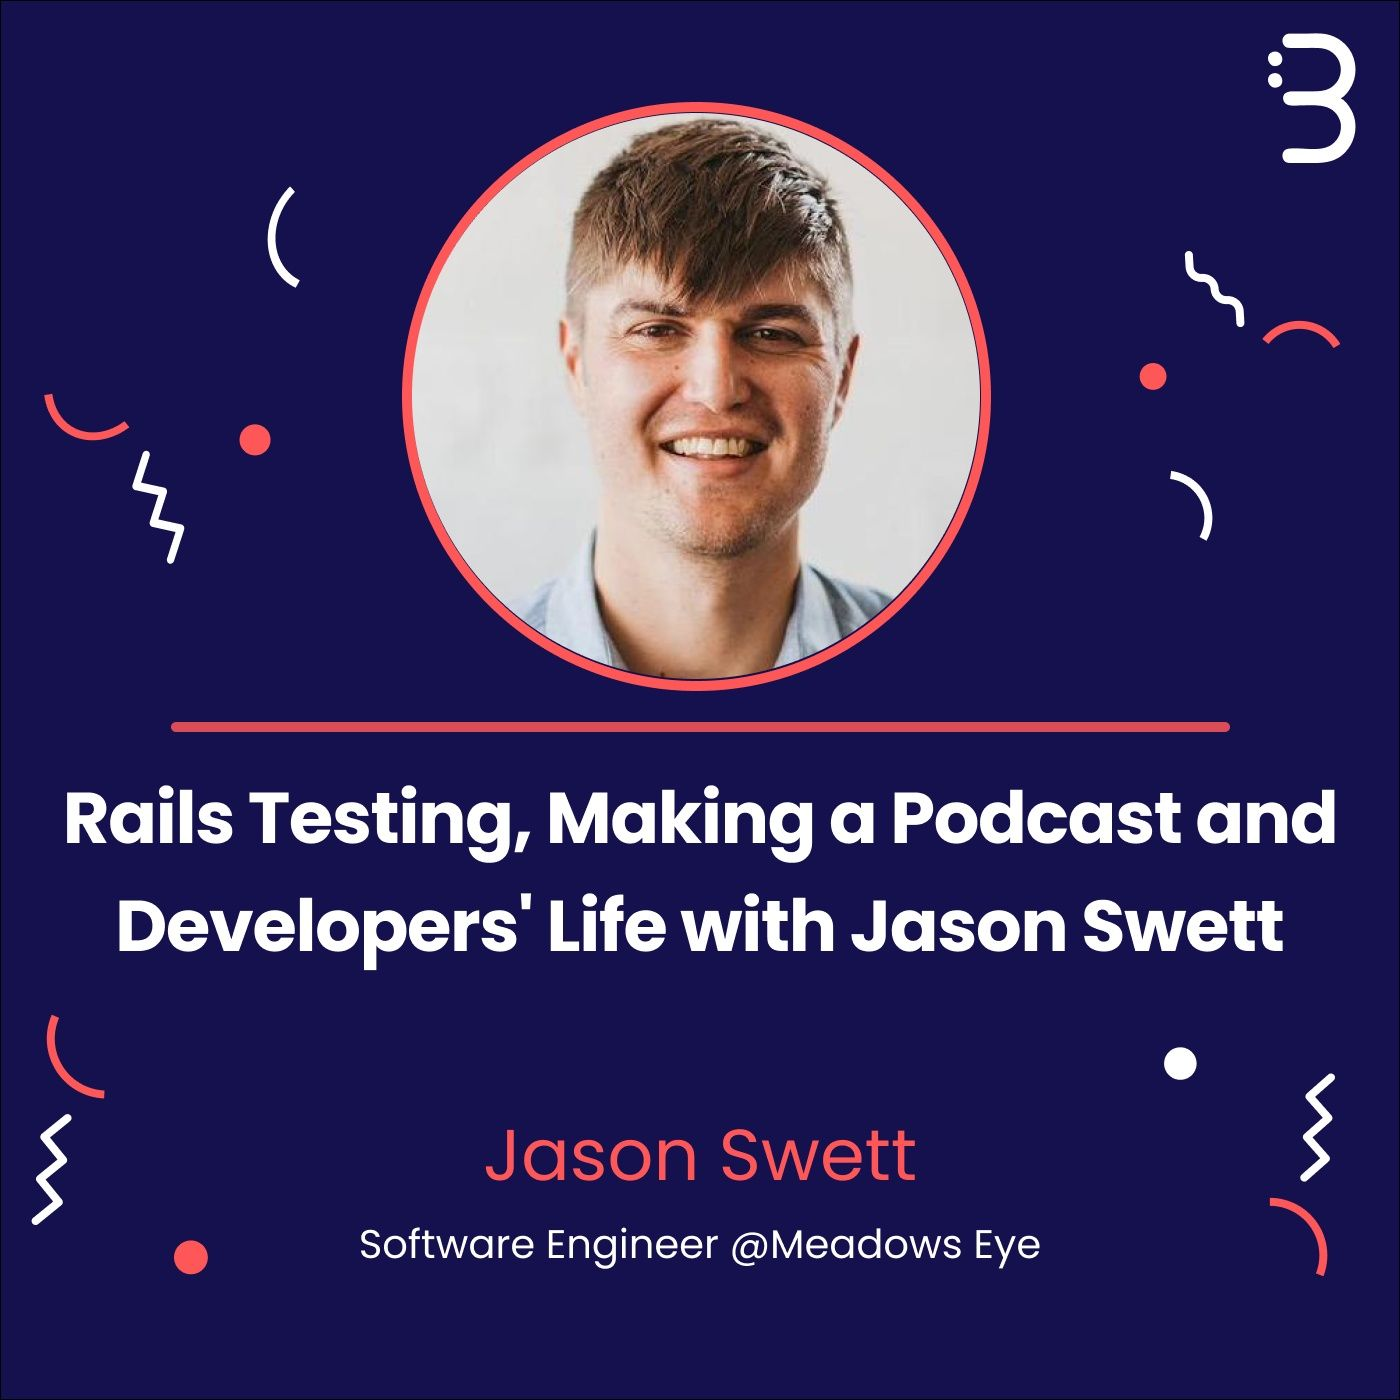 Teknik: Rails Testing, Making a Podcast and Developers' Life with Jason Swett